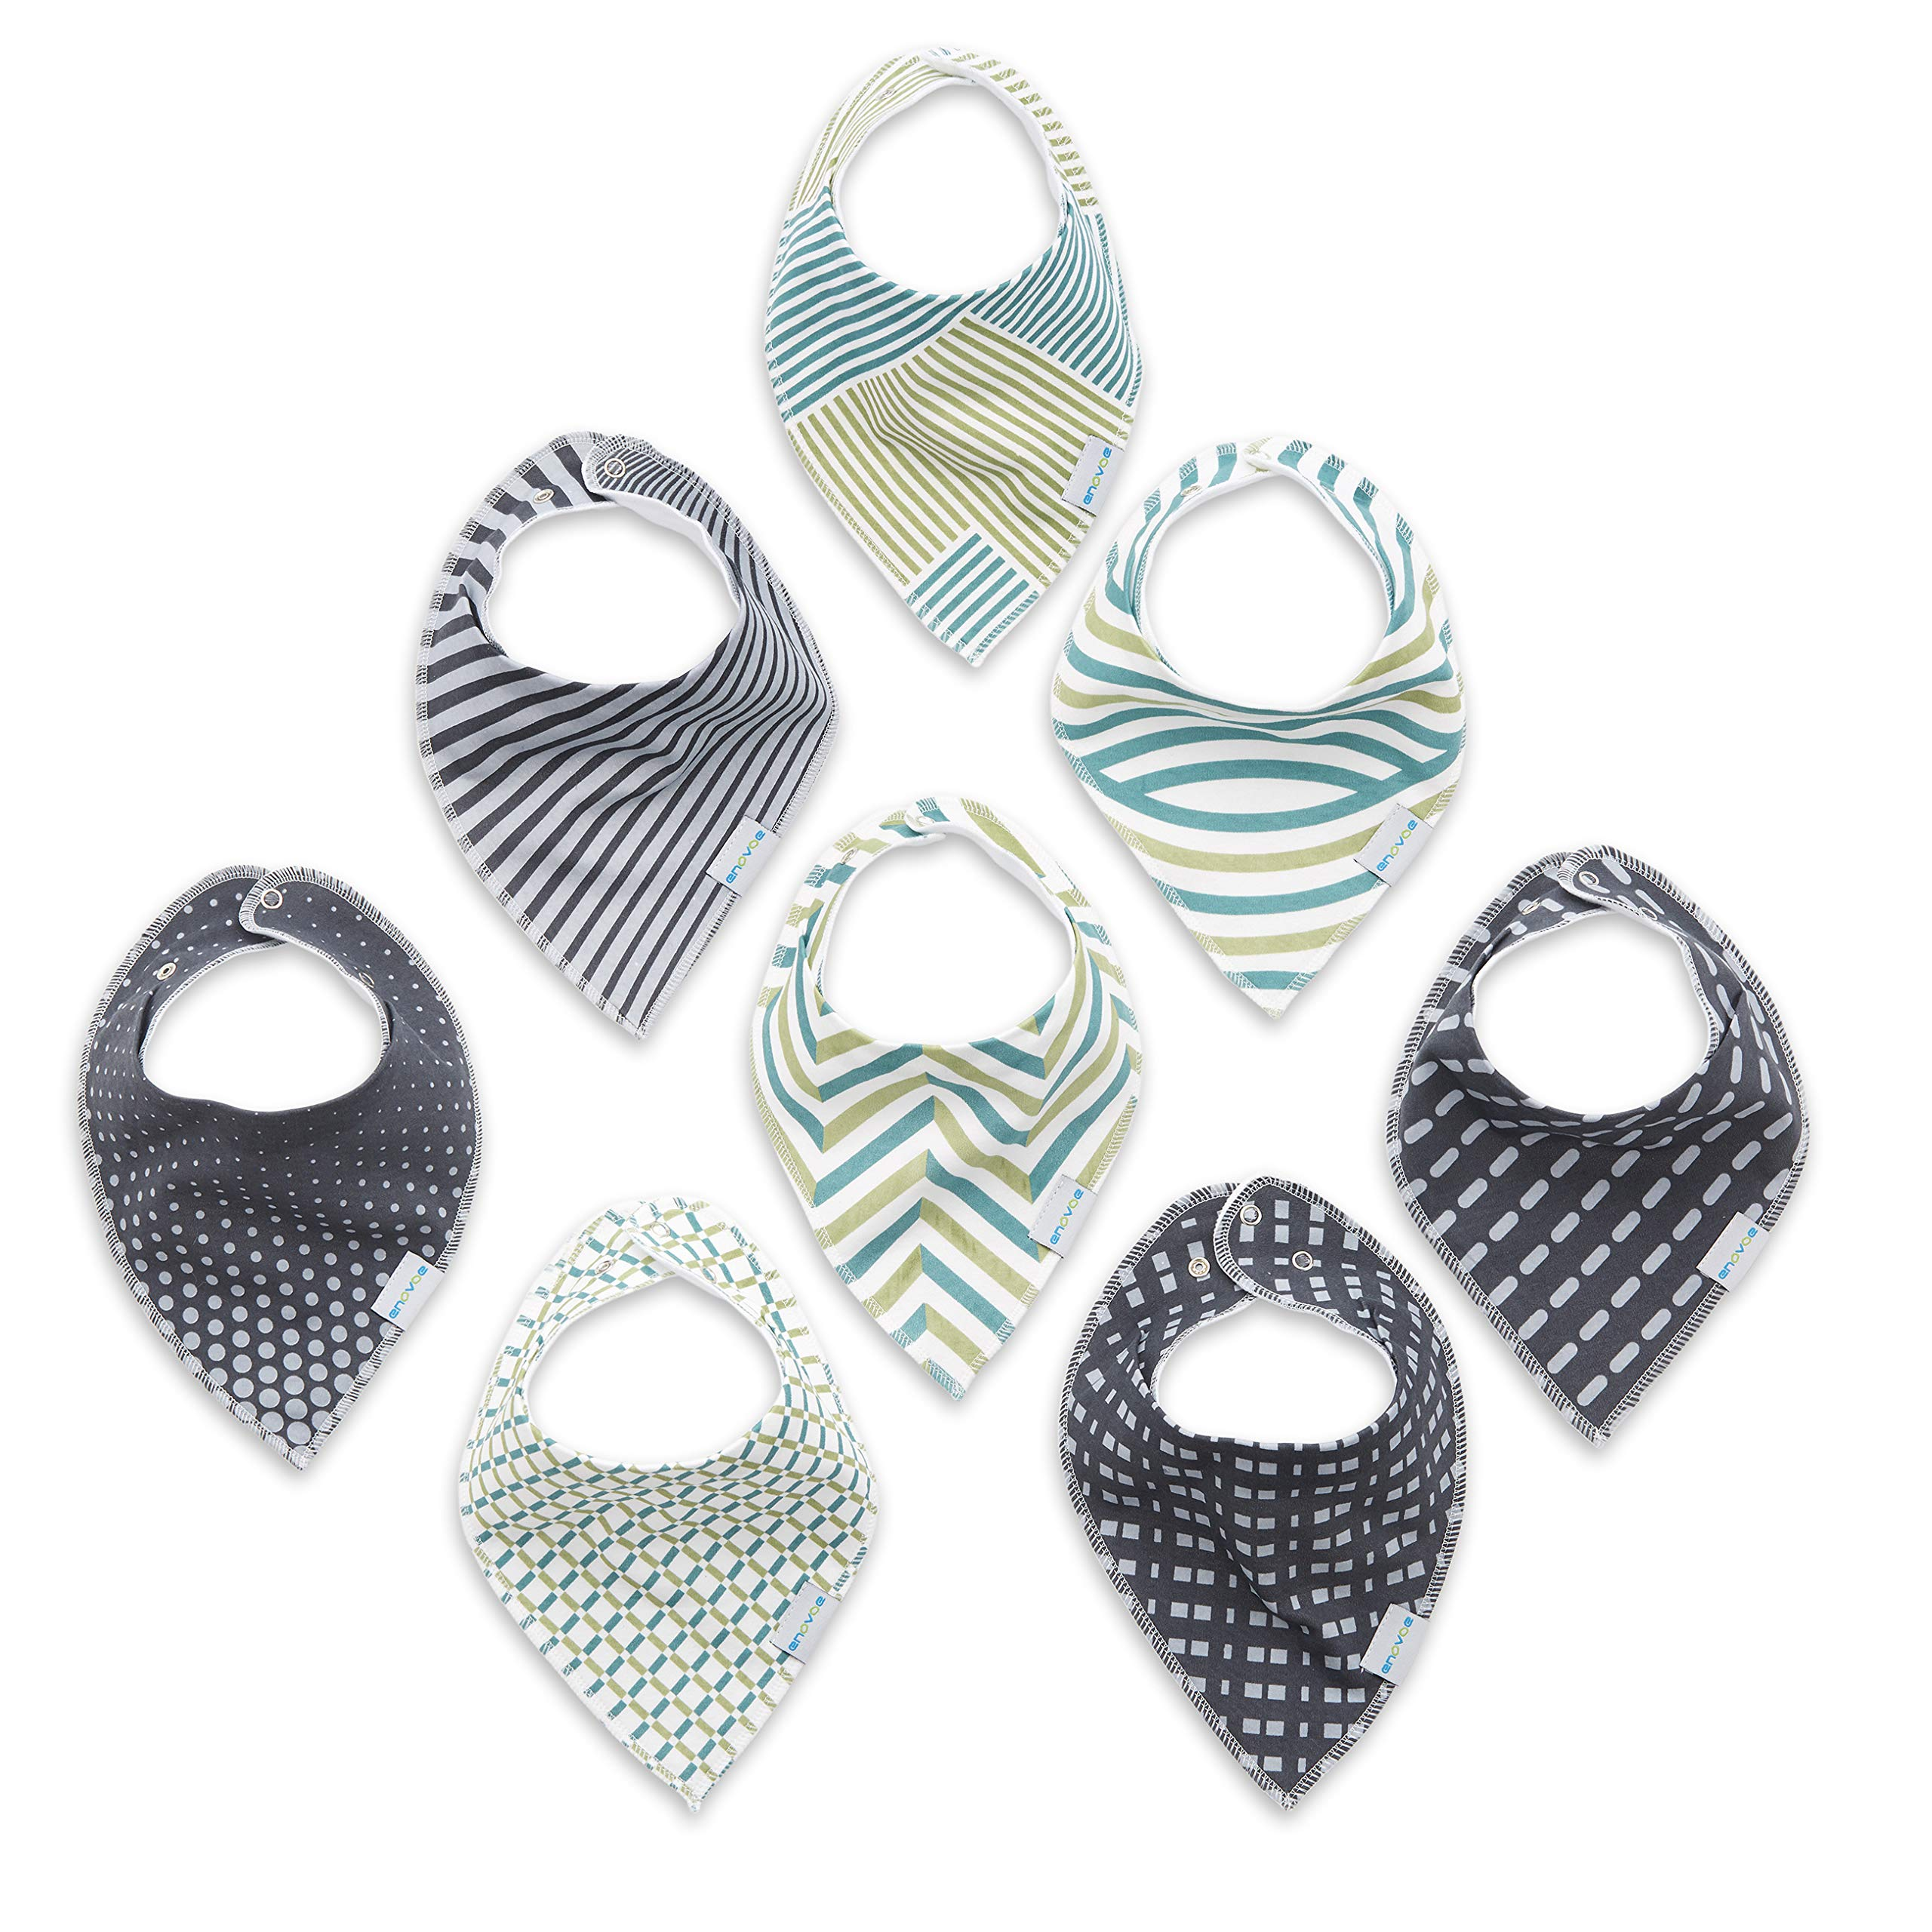 Baby Bandana Bibs for Boys & Girls - Newborn and Infant Unisex Cotton Drool Bib with Snaps – Baby Shower Gifts